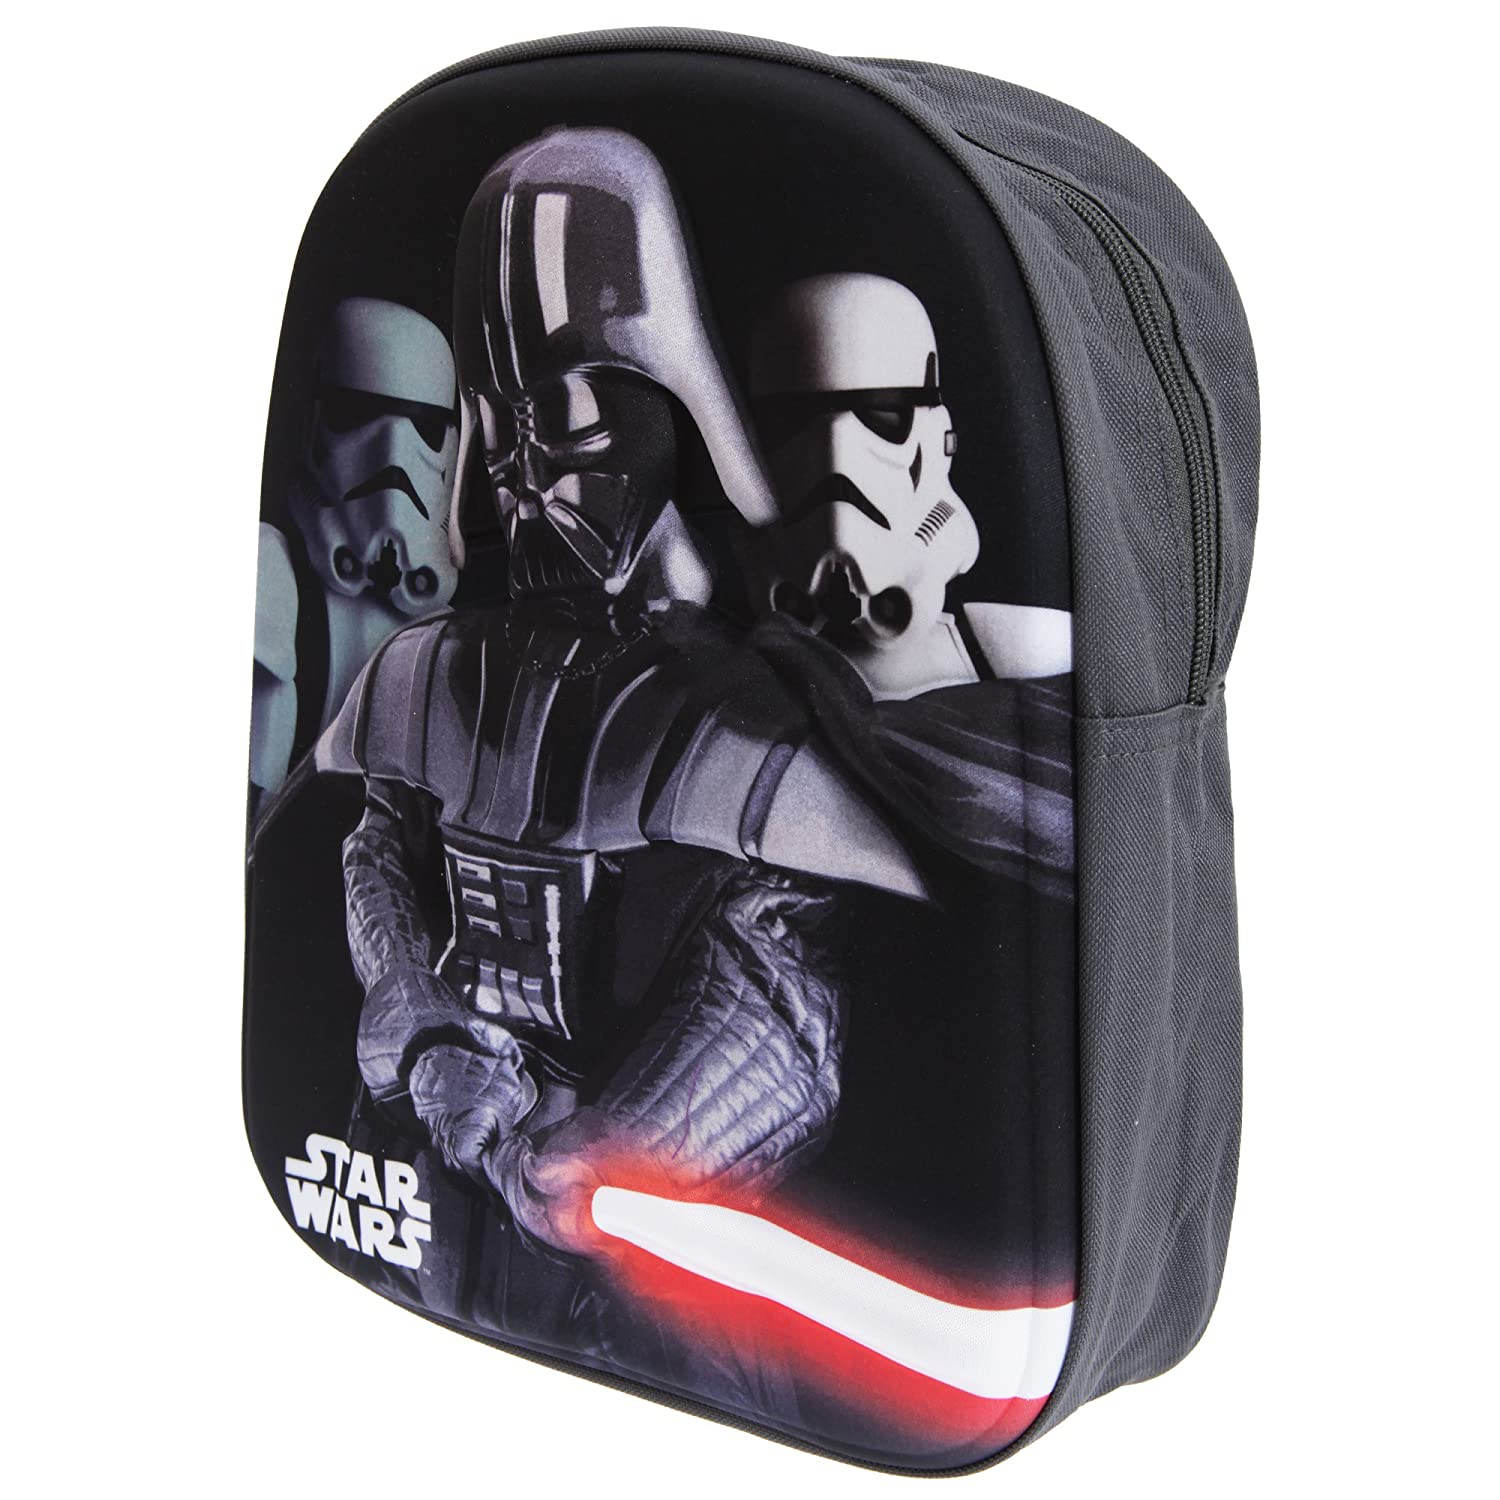 (One size, Black) - Star Wars Childrens/Kids Official Darth Vader Backpack/Rucksack   B014FWFEDG